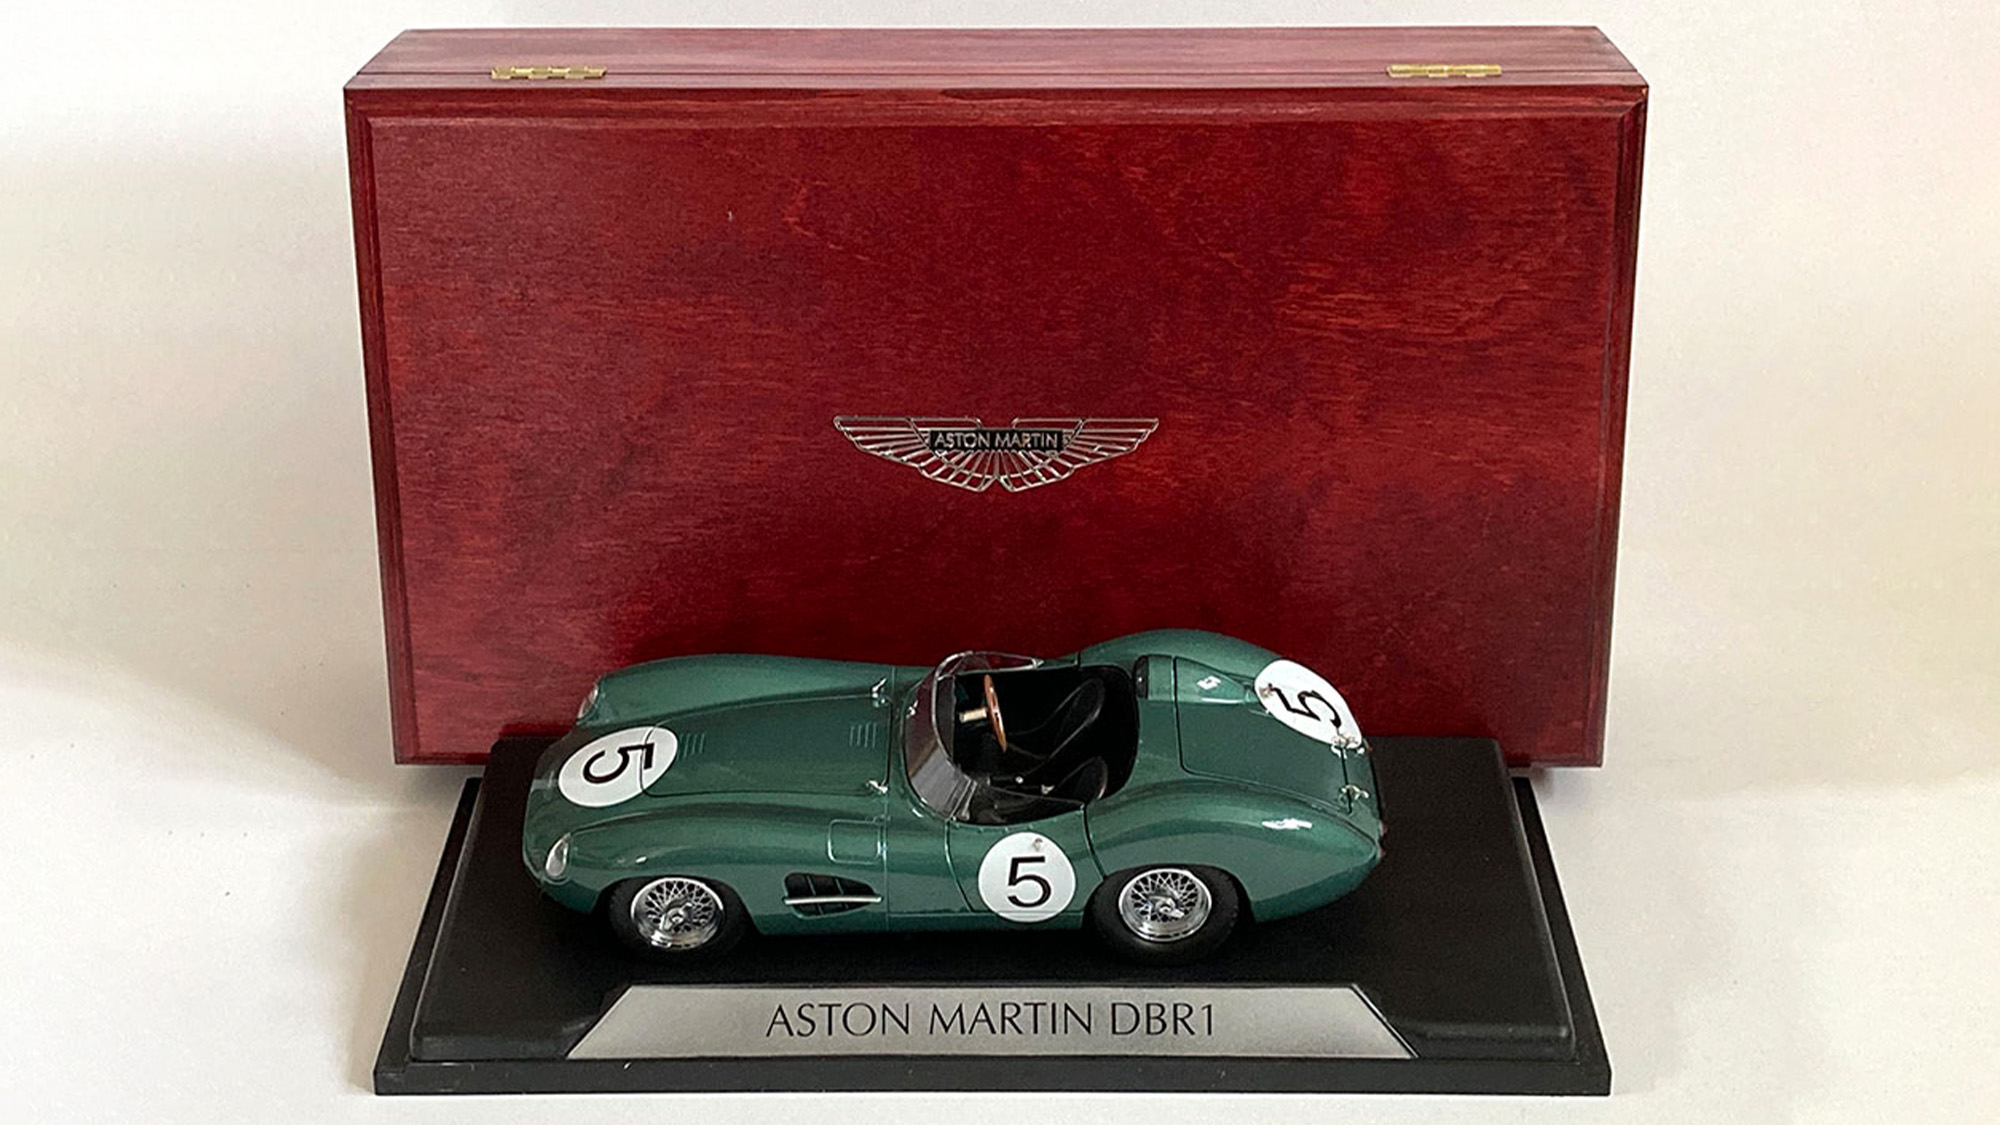 Shelby signed DBR1